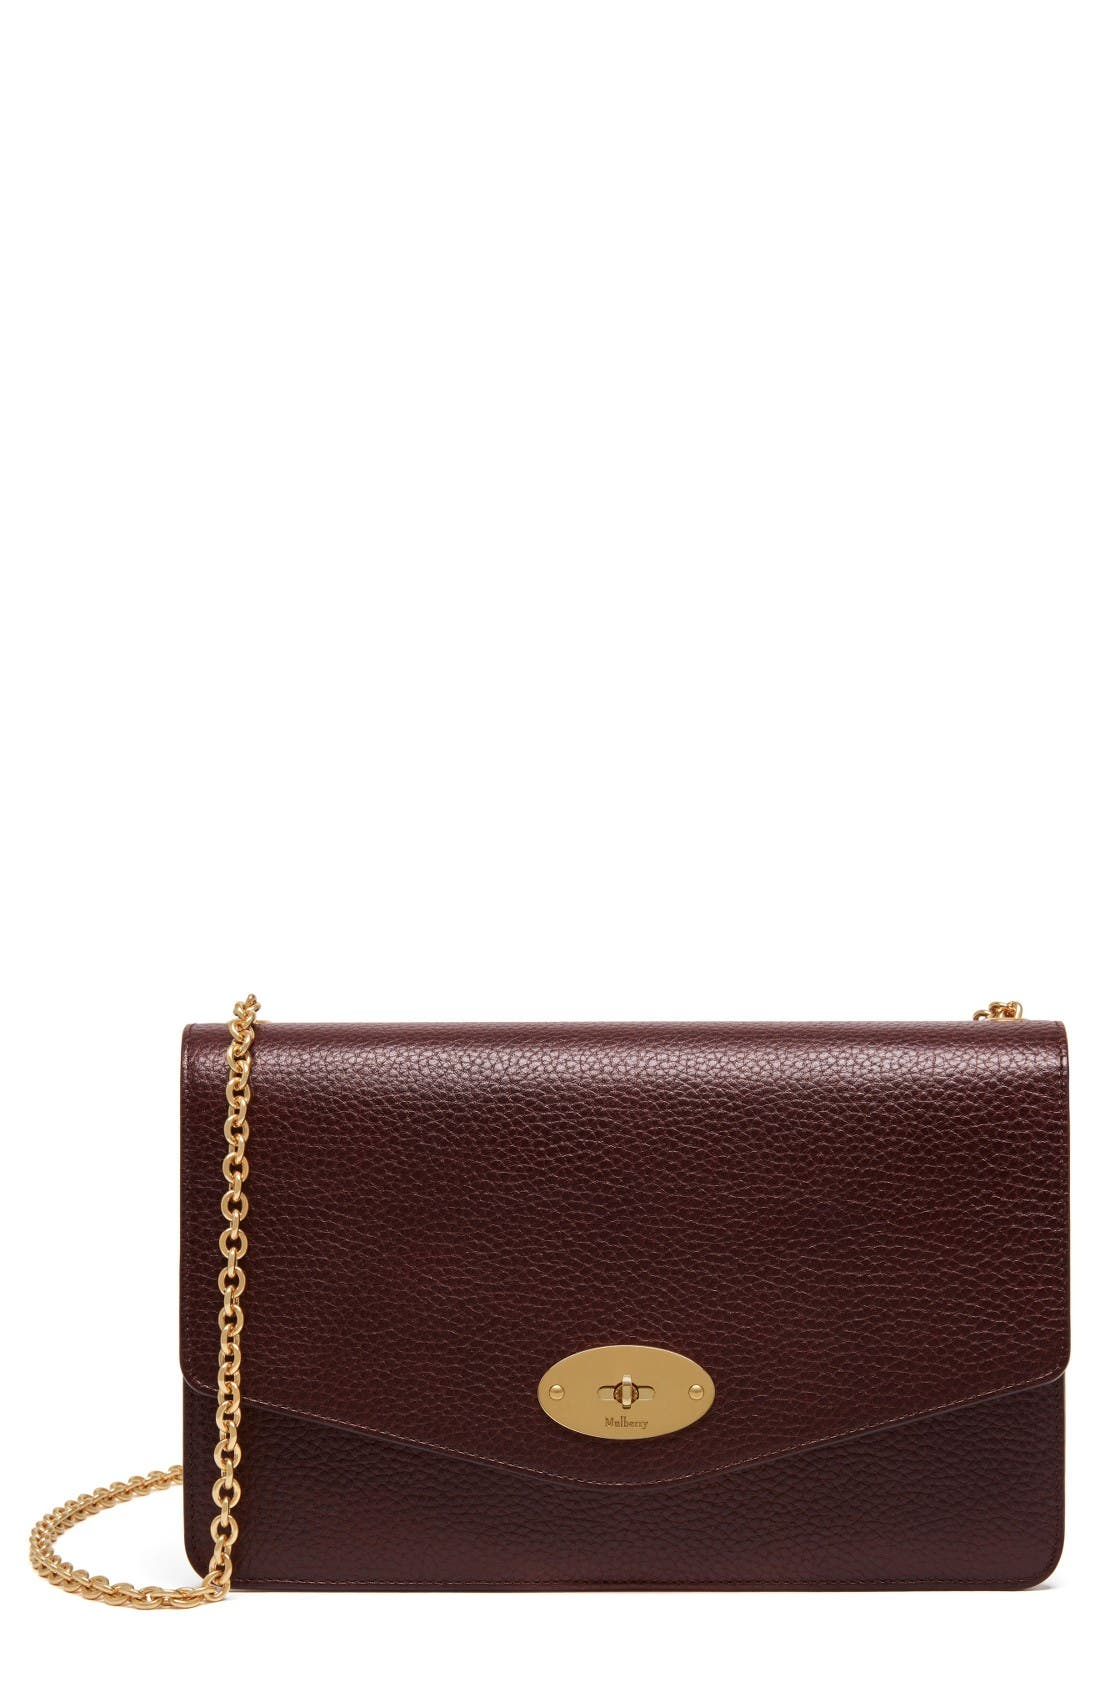 Mulberry Large Postman's Lock Clutch